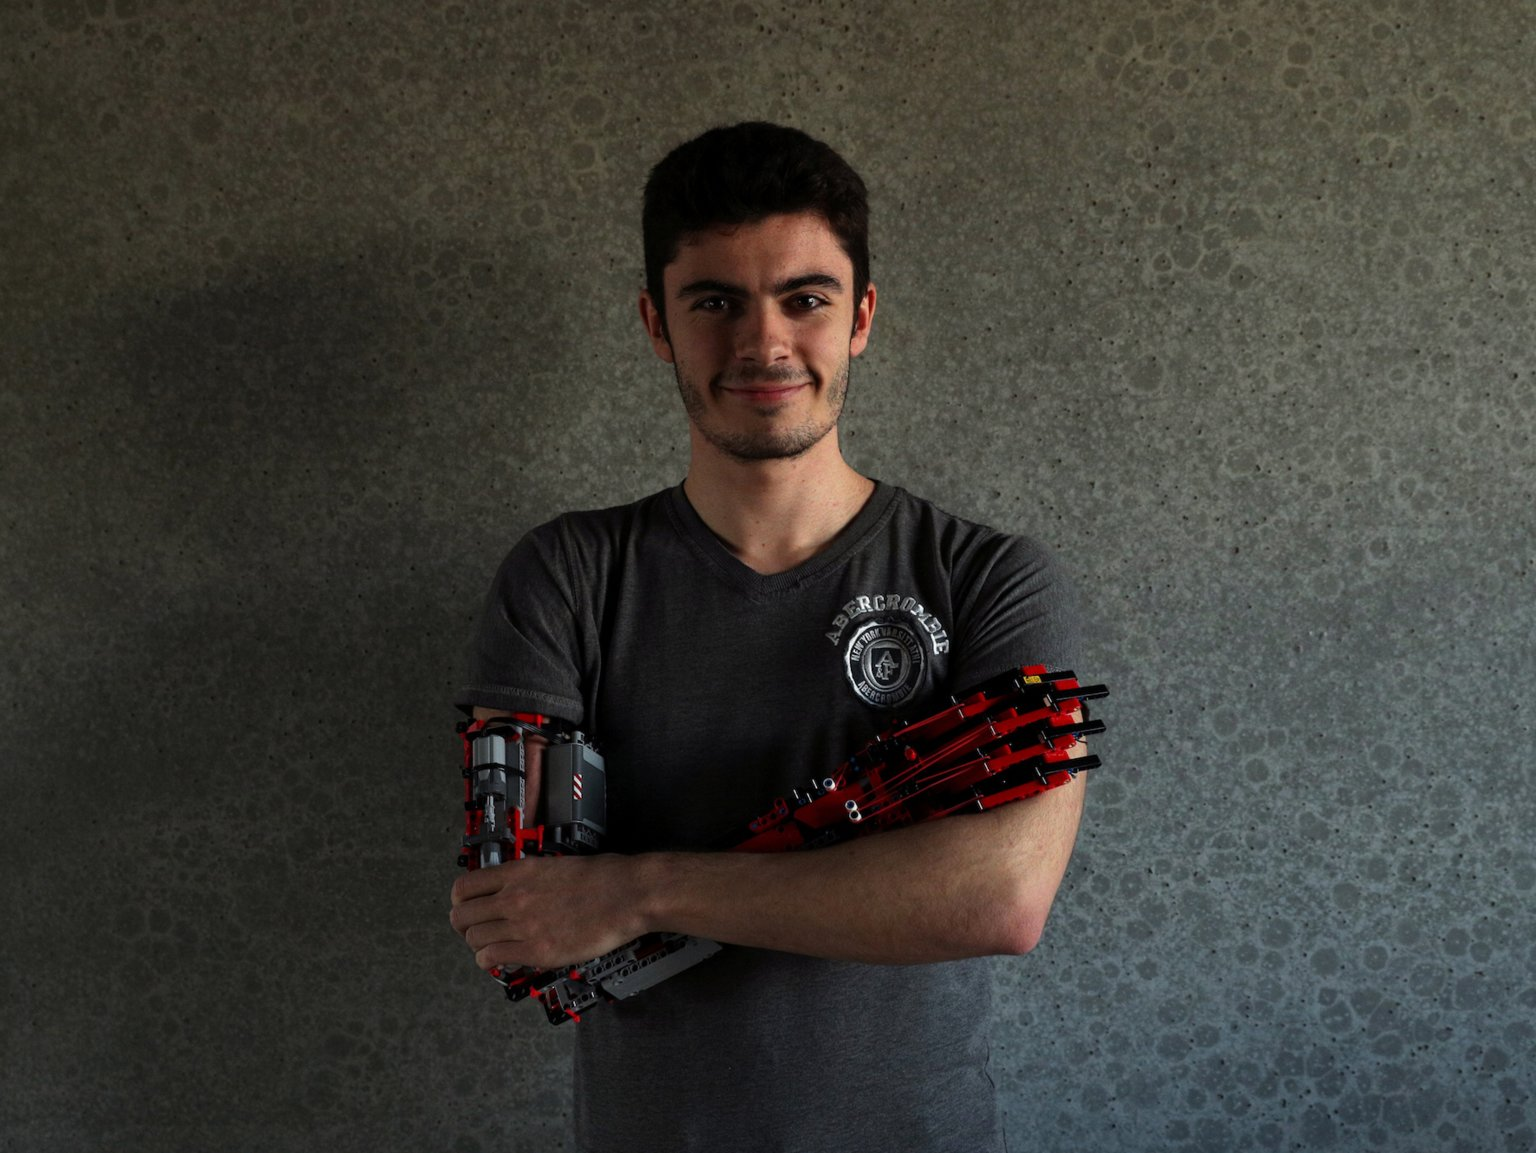 David Aguilar Poses with Lego Arm